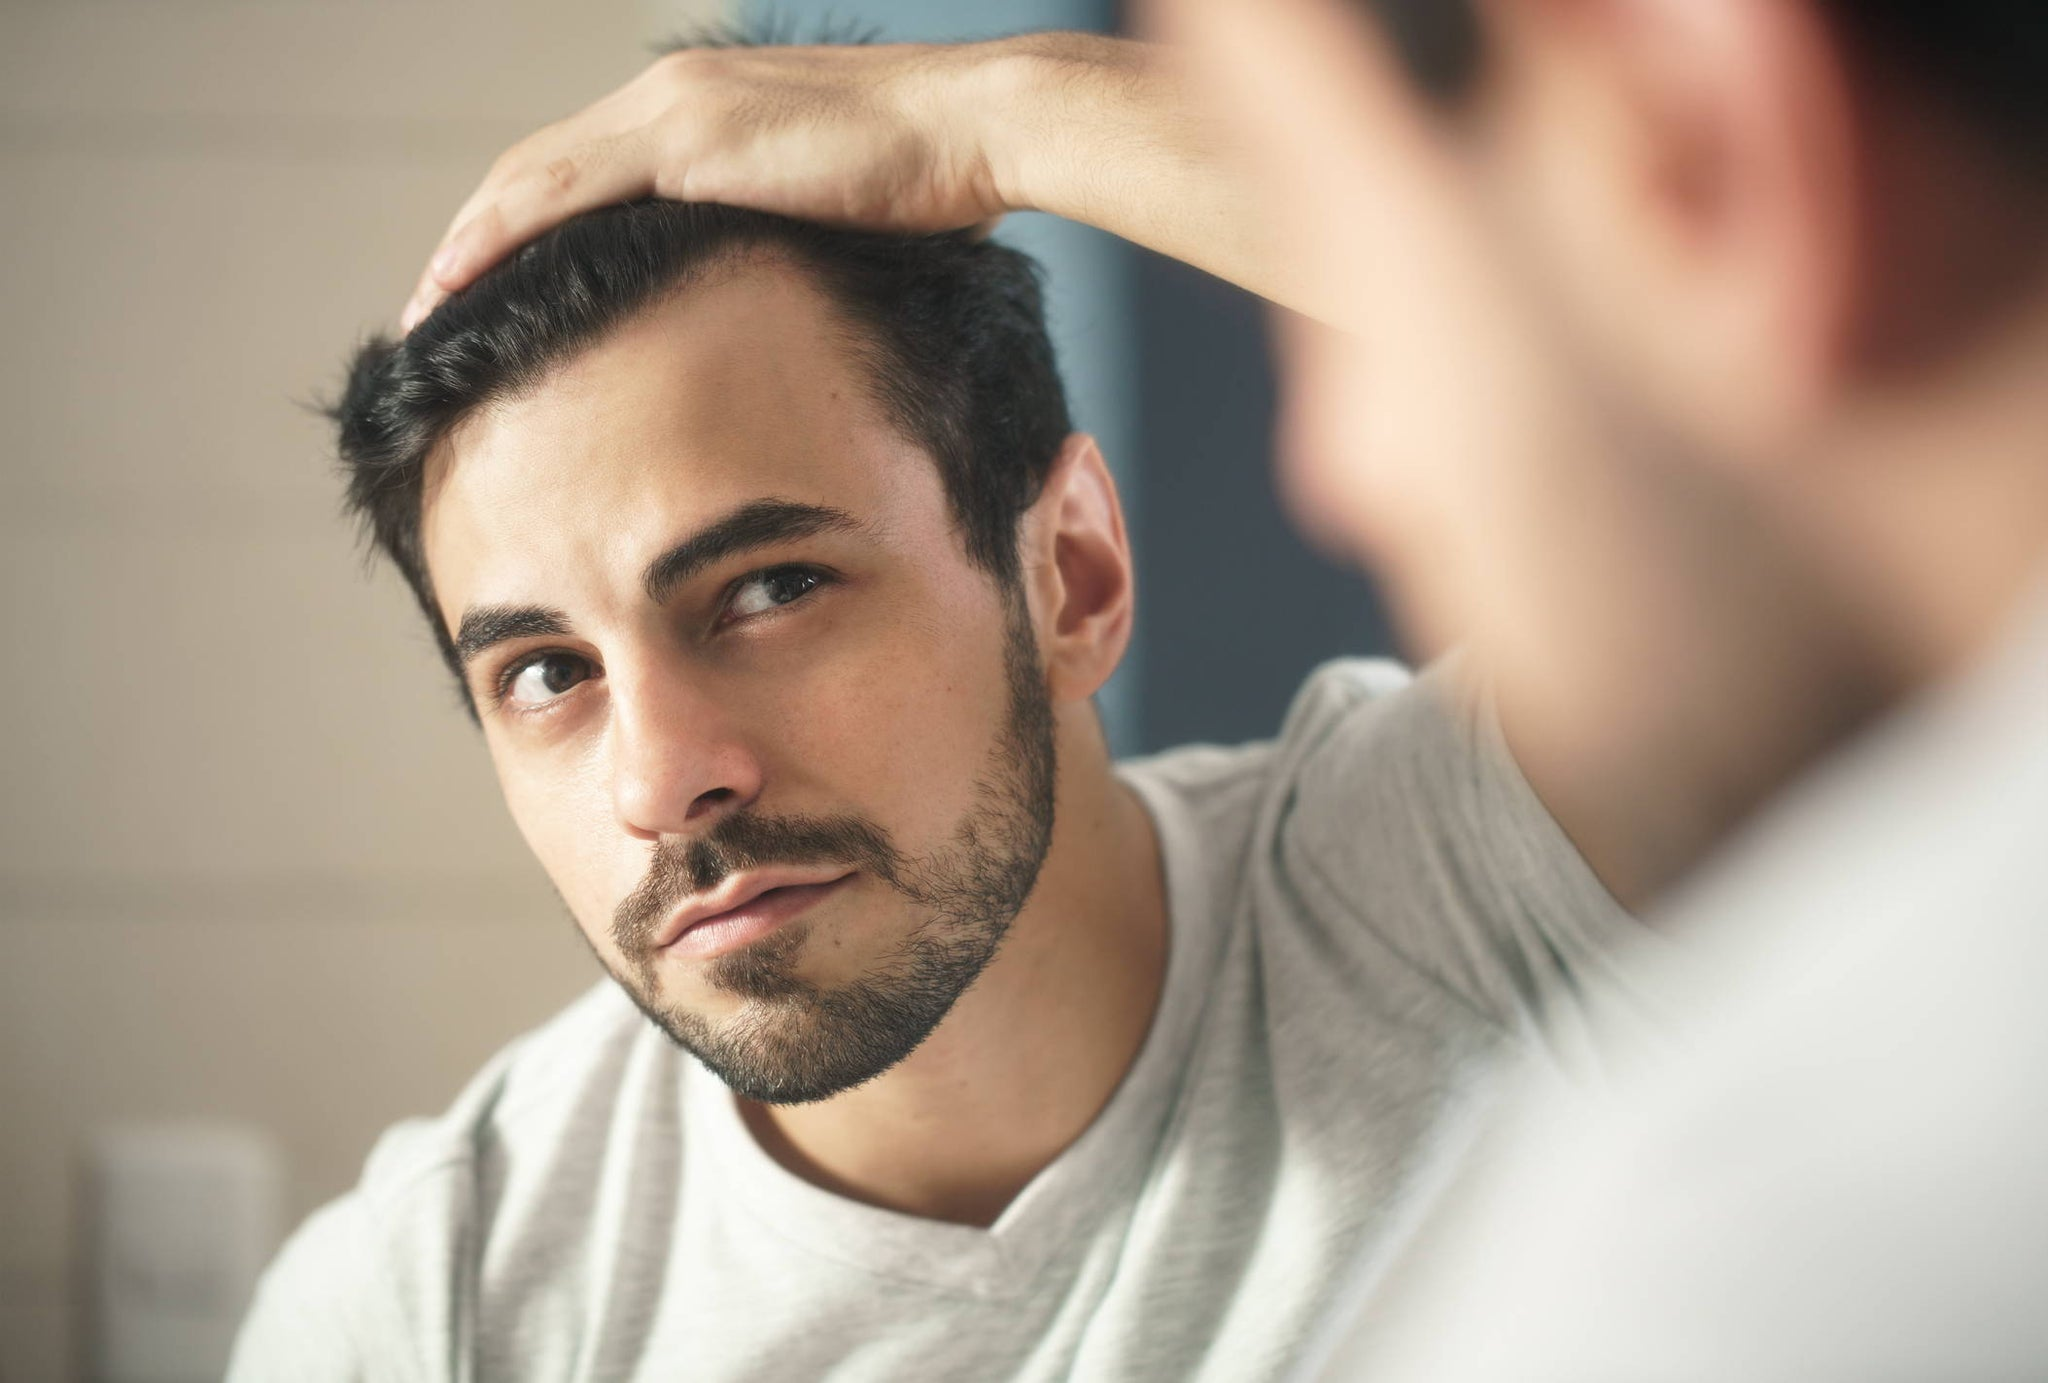 Which Vitamin Deficiency Causes Hair Loss?